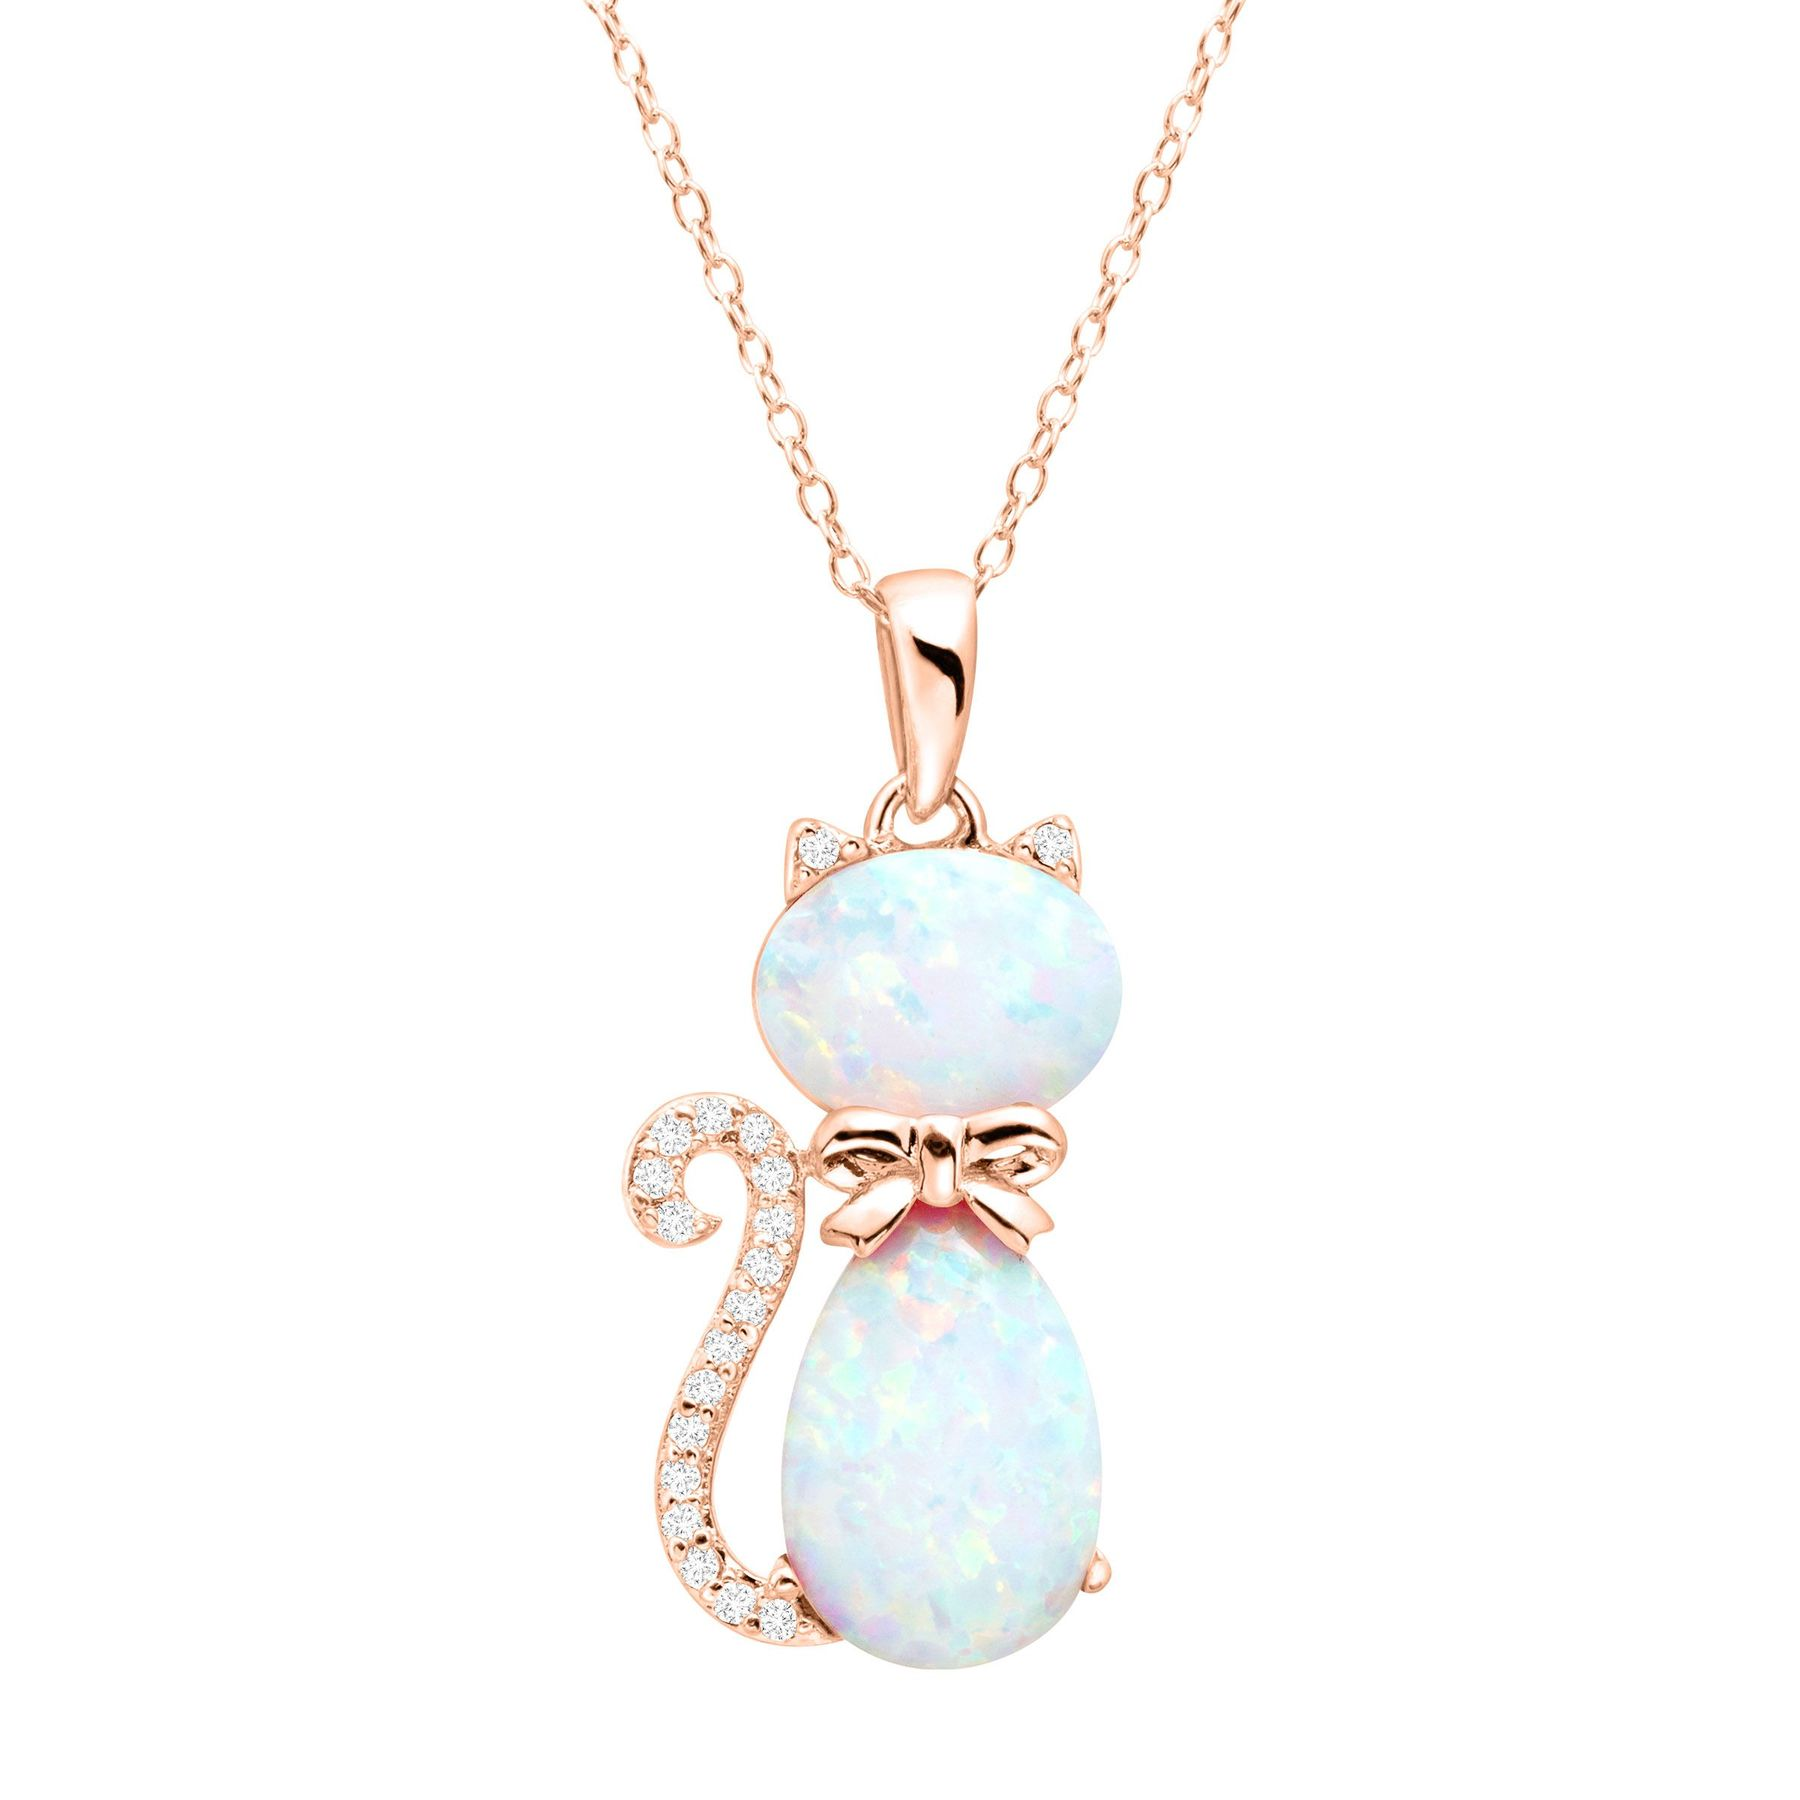 necklace birthstone gift valentine fire white october ball pin opal blue jewelry day her for